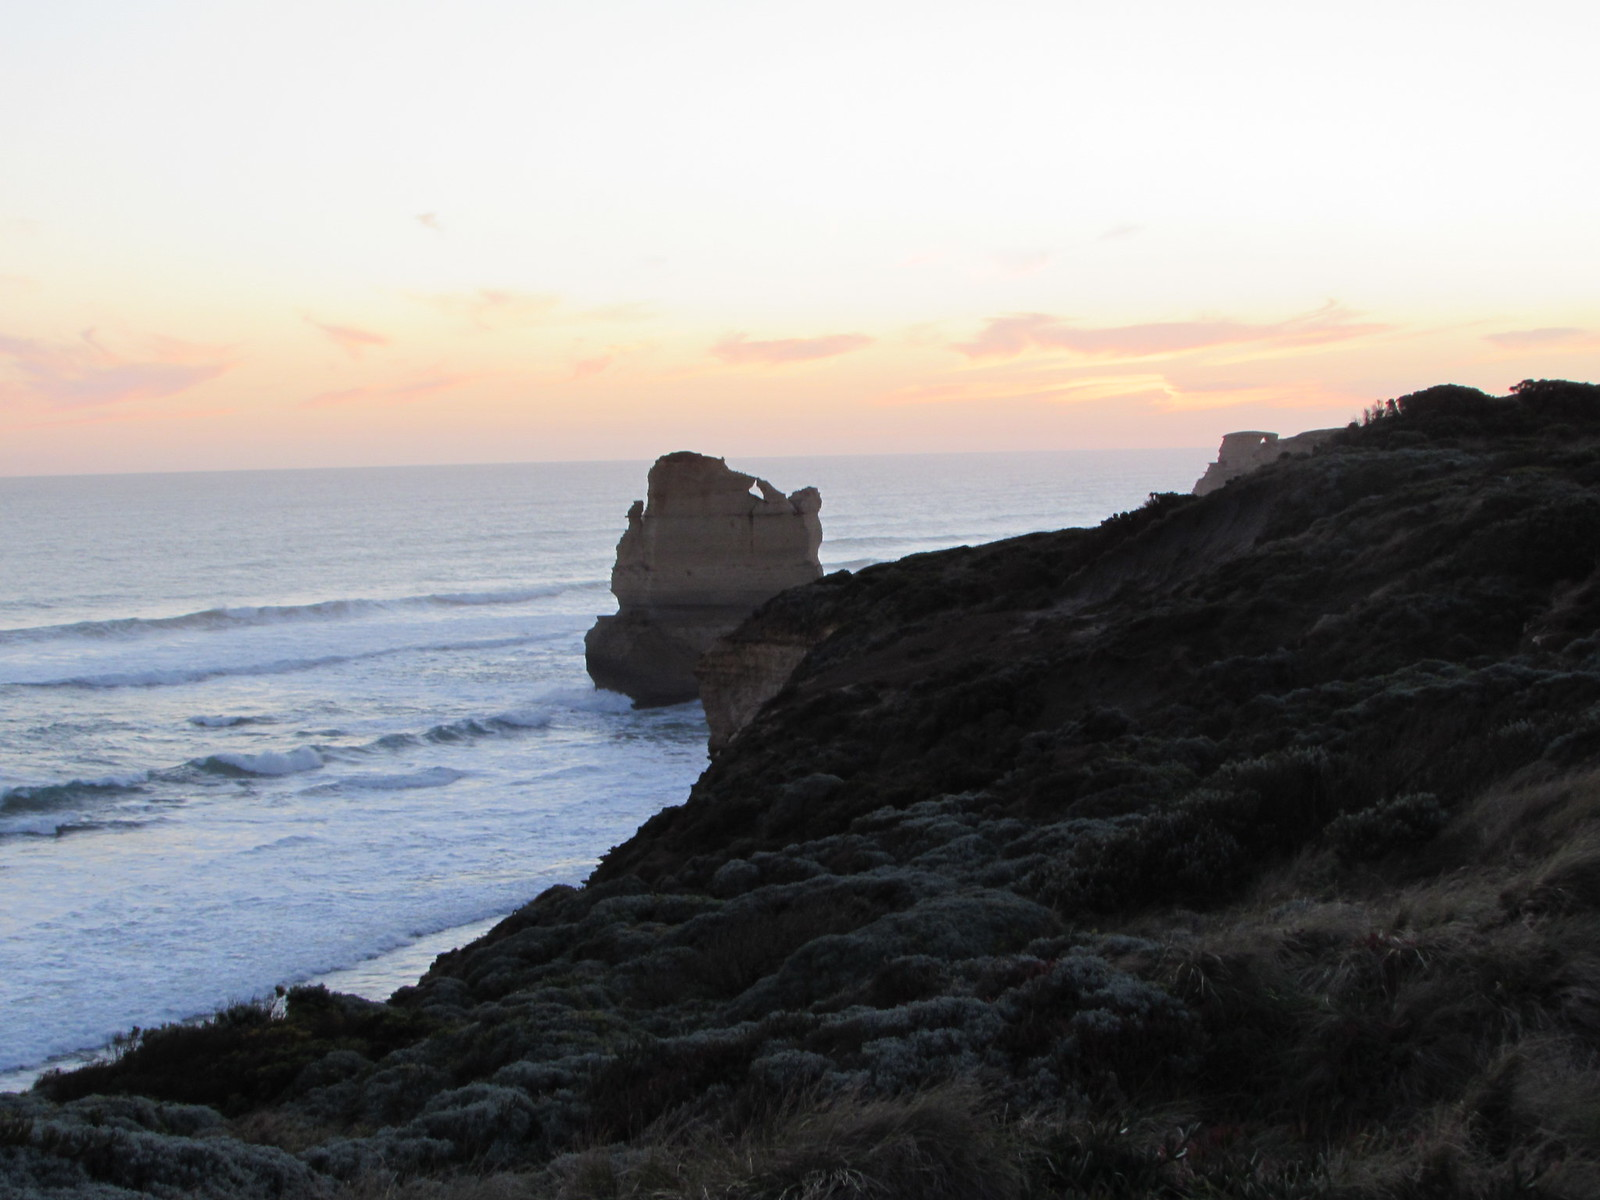 ... when we reached the first of the (not really) Twelve Apostles